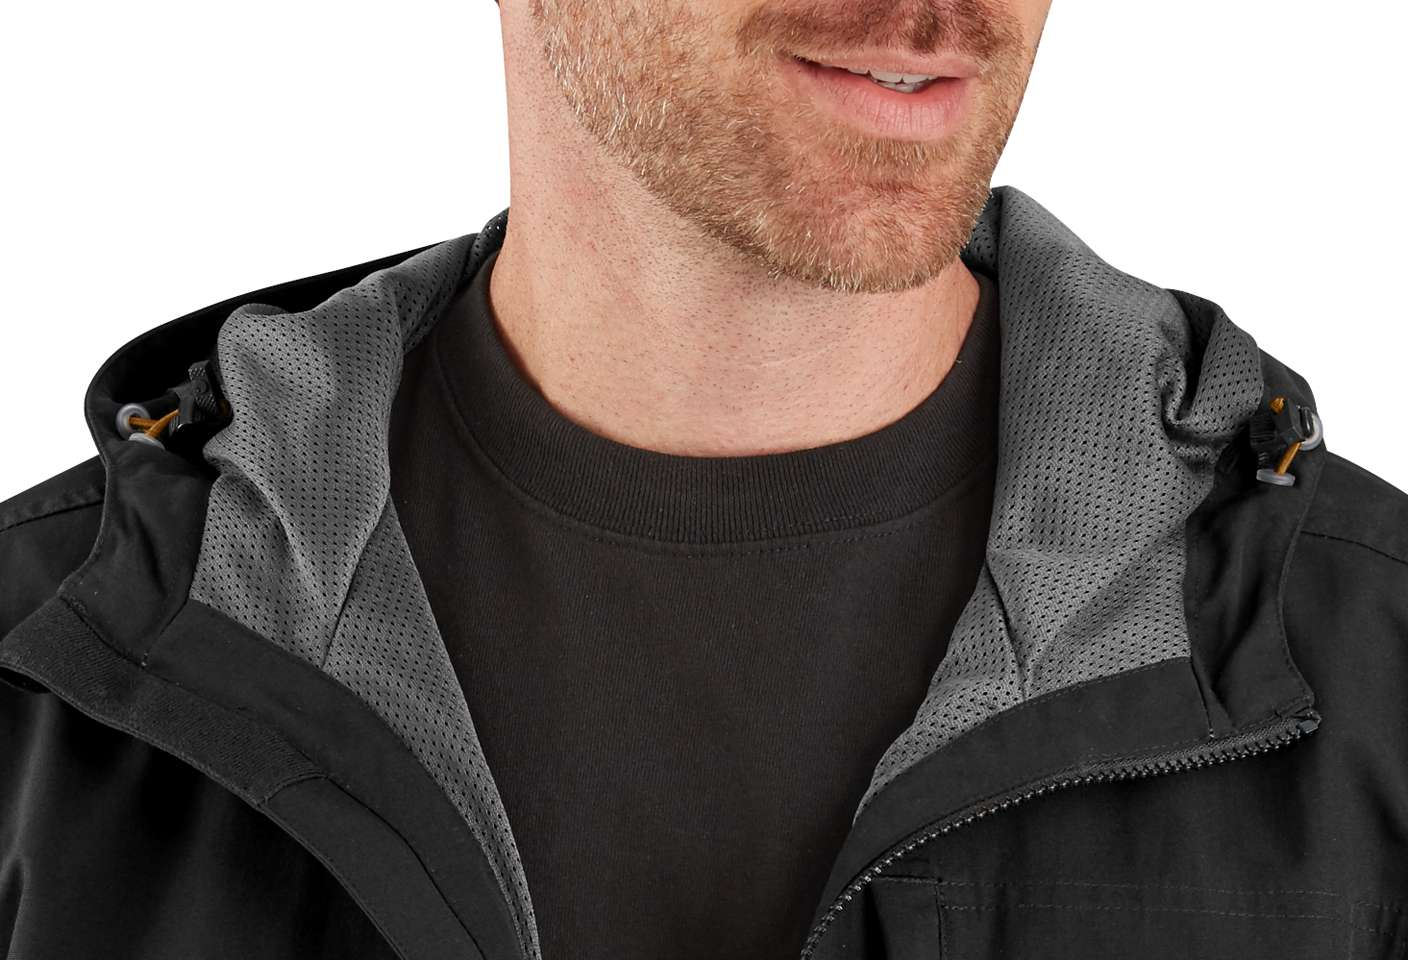 Hood volume adjuster ensures you find the perfect fit